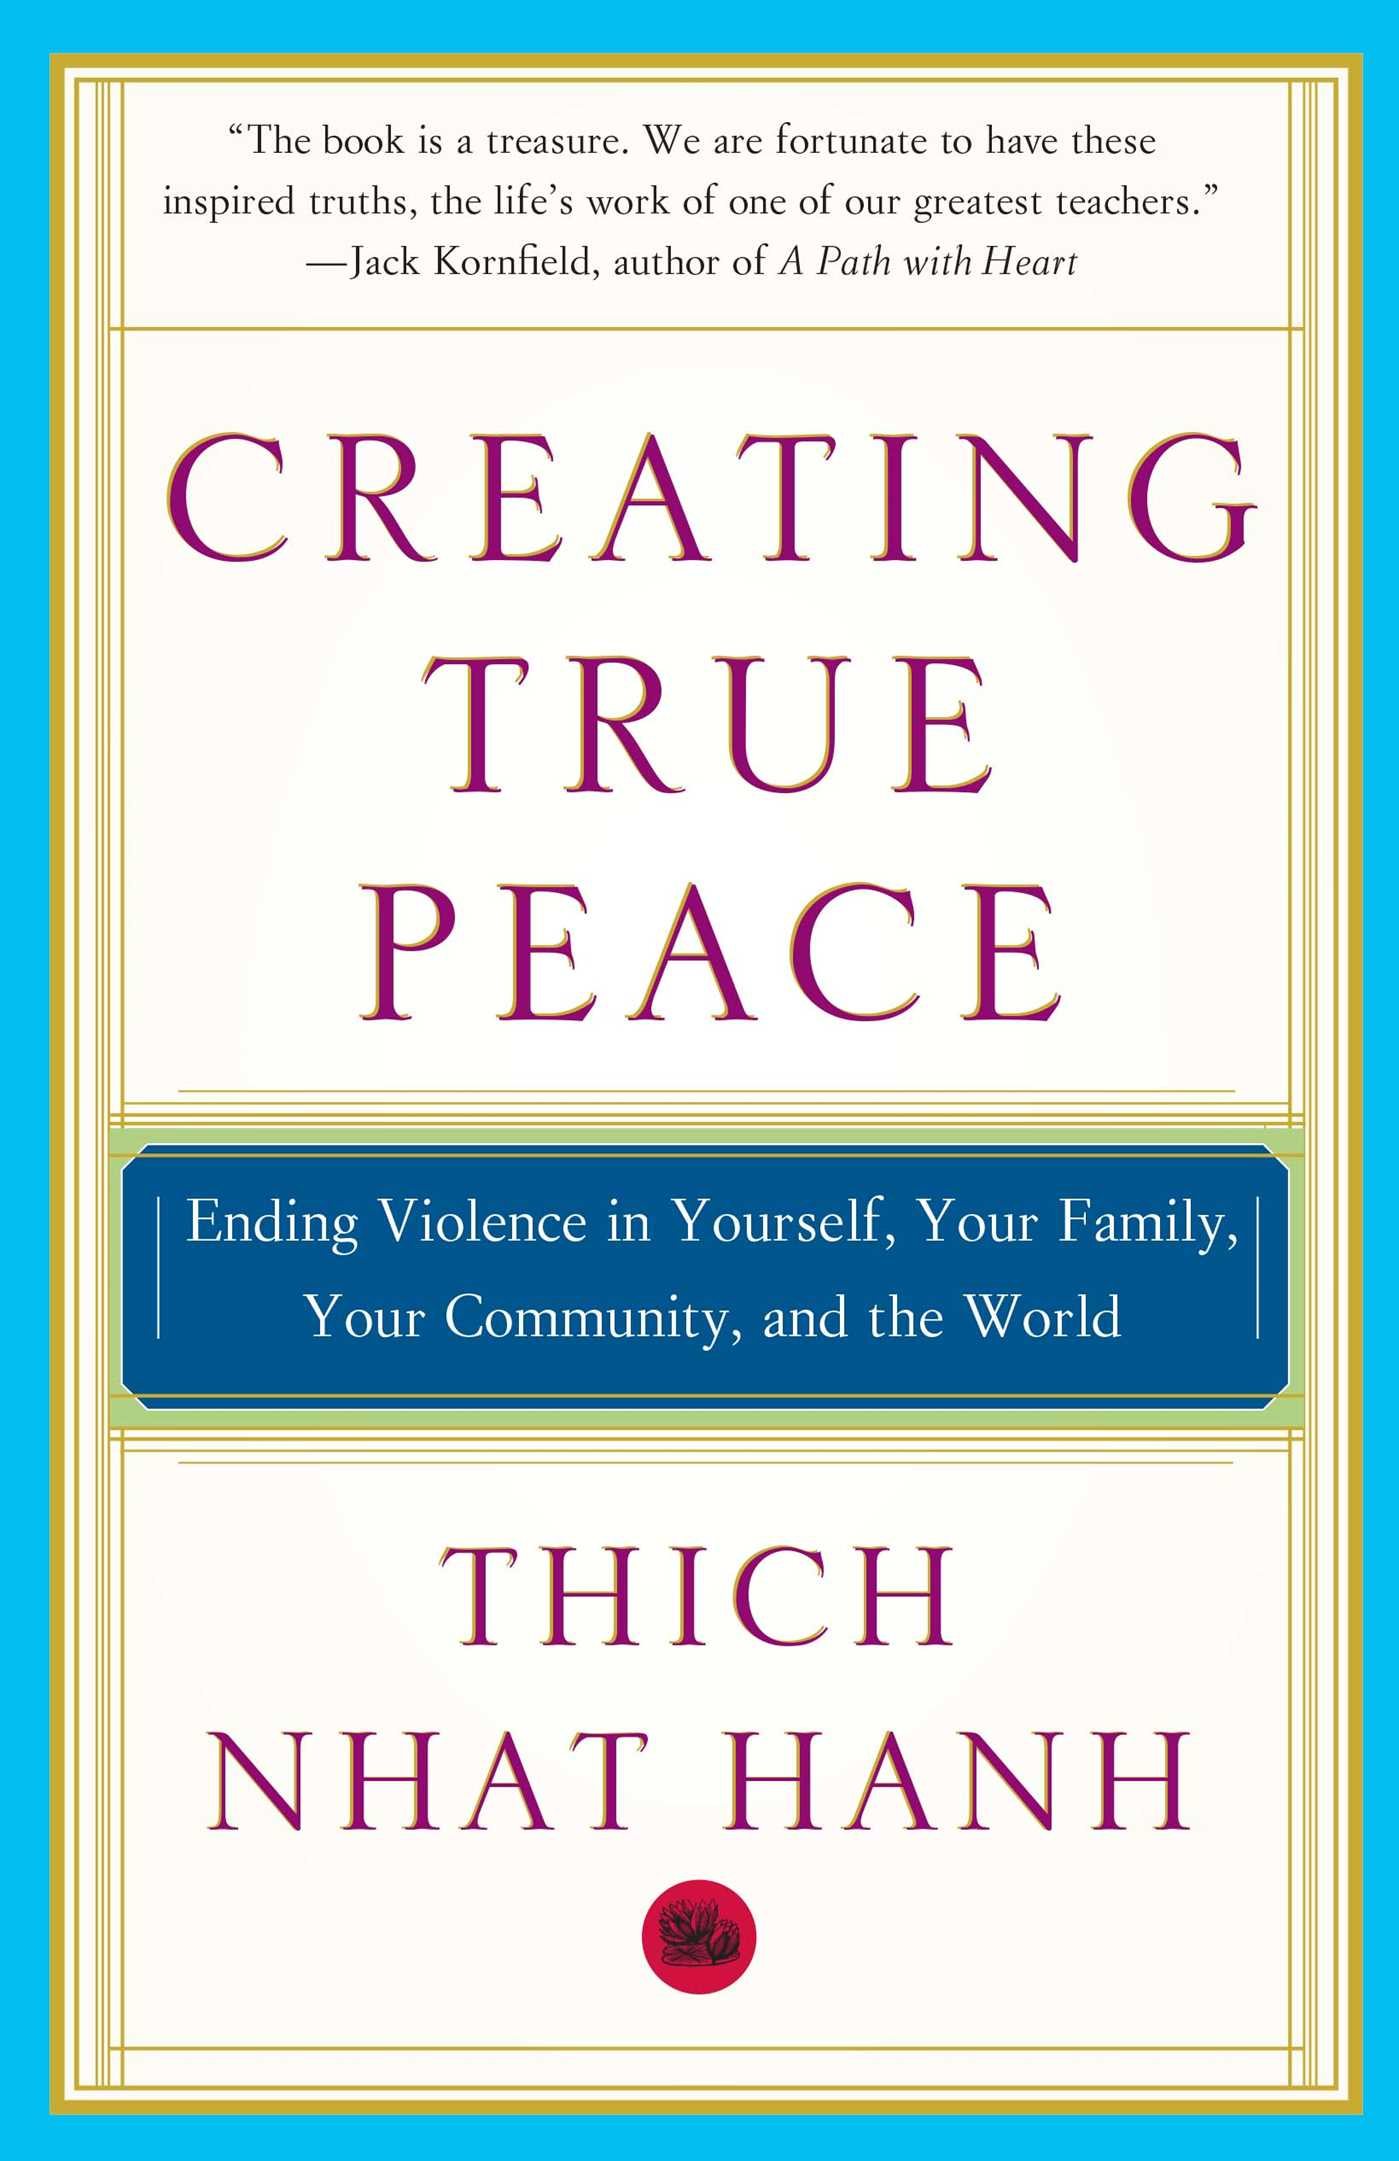 The community of the spirit ebook array creating true peace book by thich nhat hanh official publisher rh simonandschuster com fandeluxe Image collections